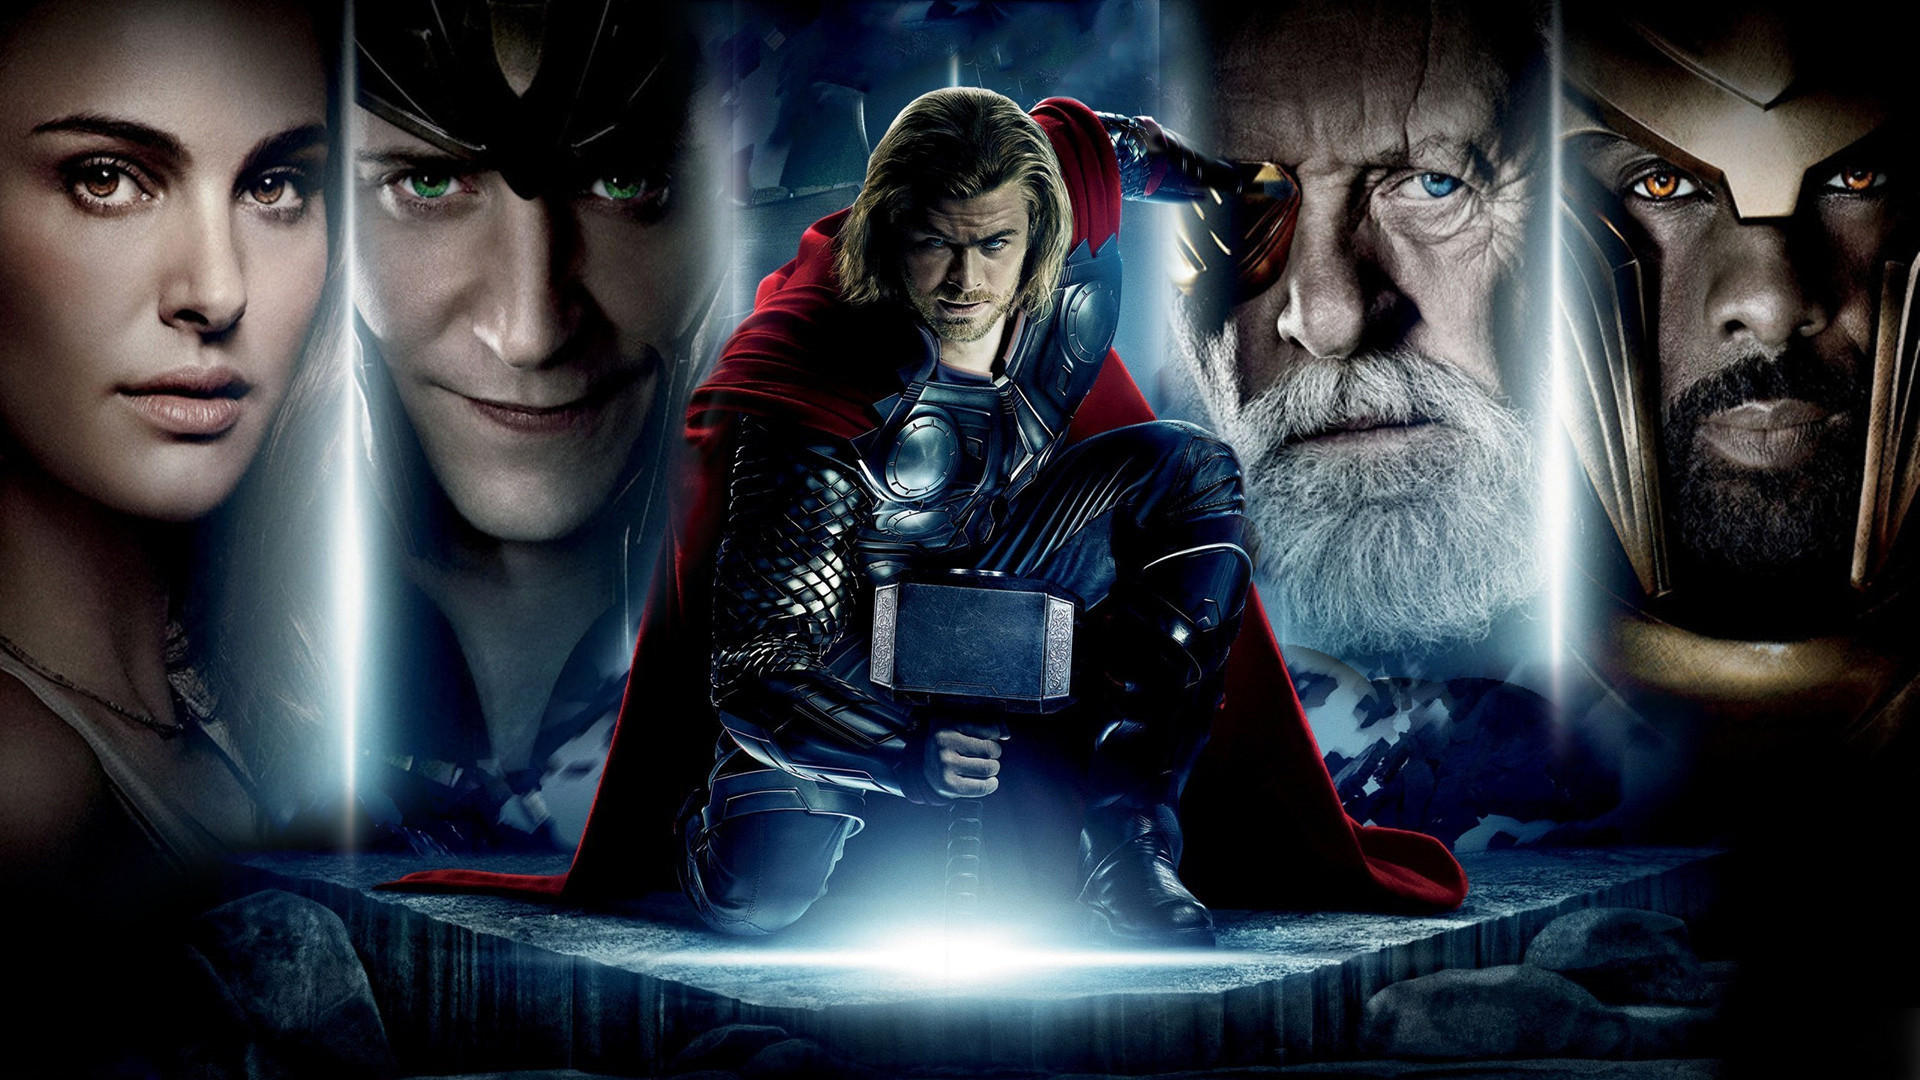 THOR Movie Multi Monitor Wallpapers HD Wallpapers 1920x1080